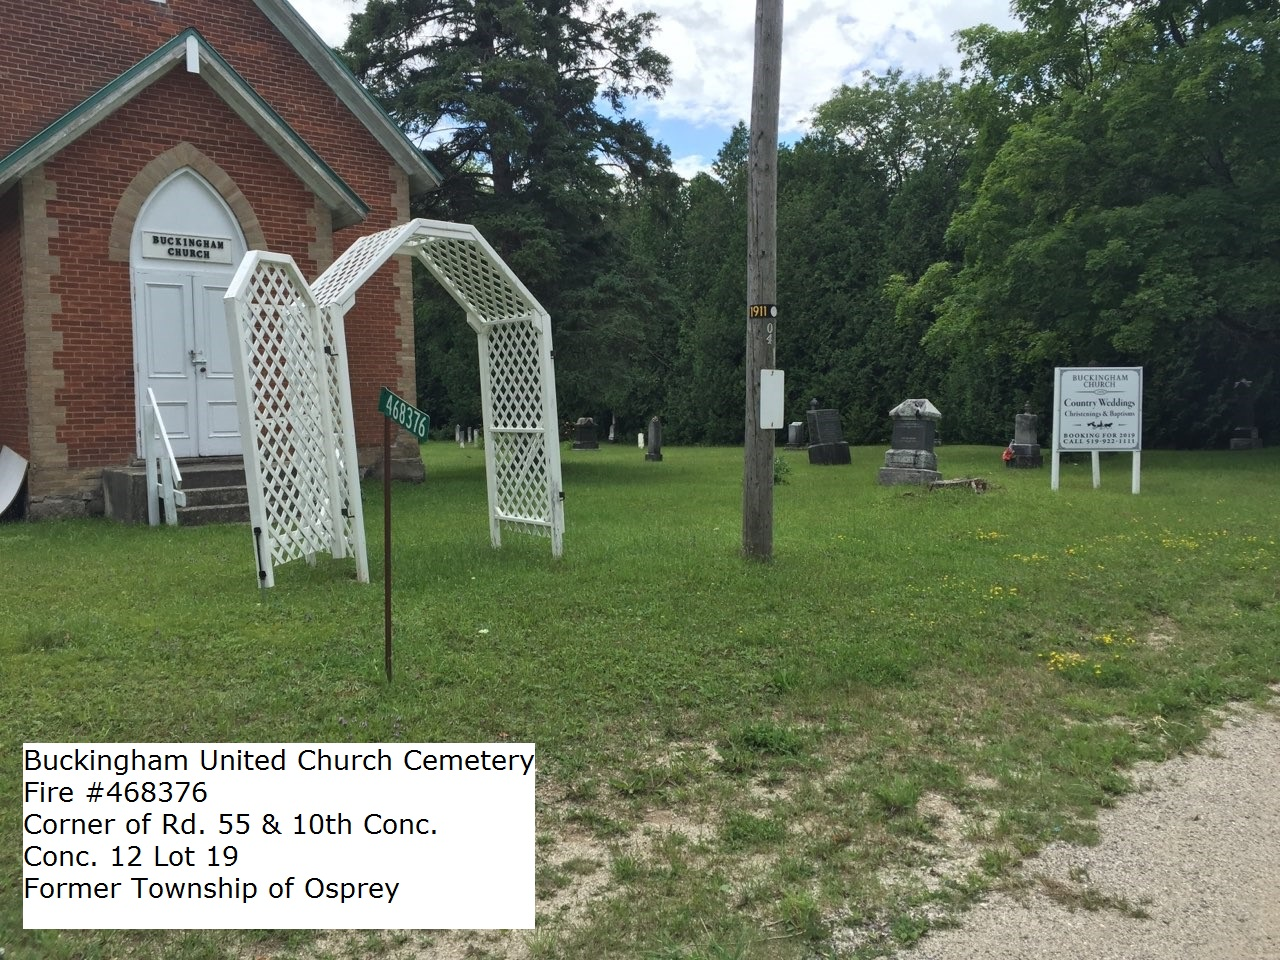 Picture of Buckingham United Church Cemetery